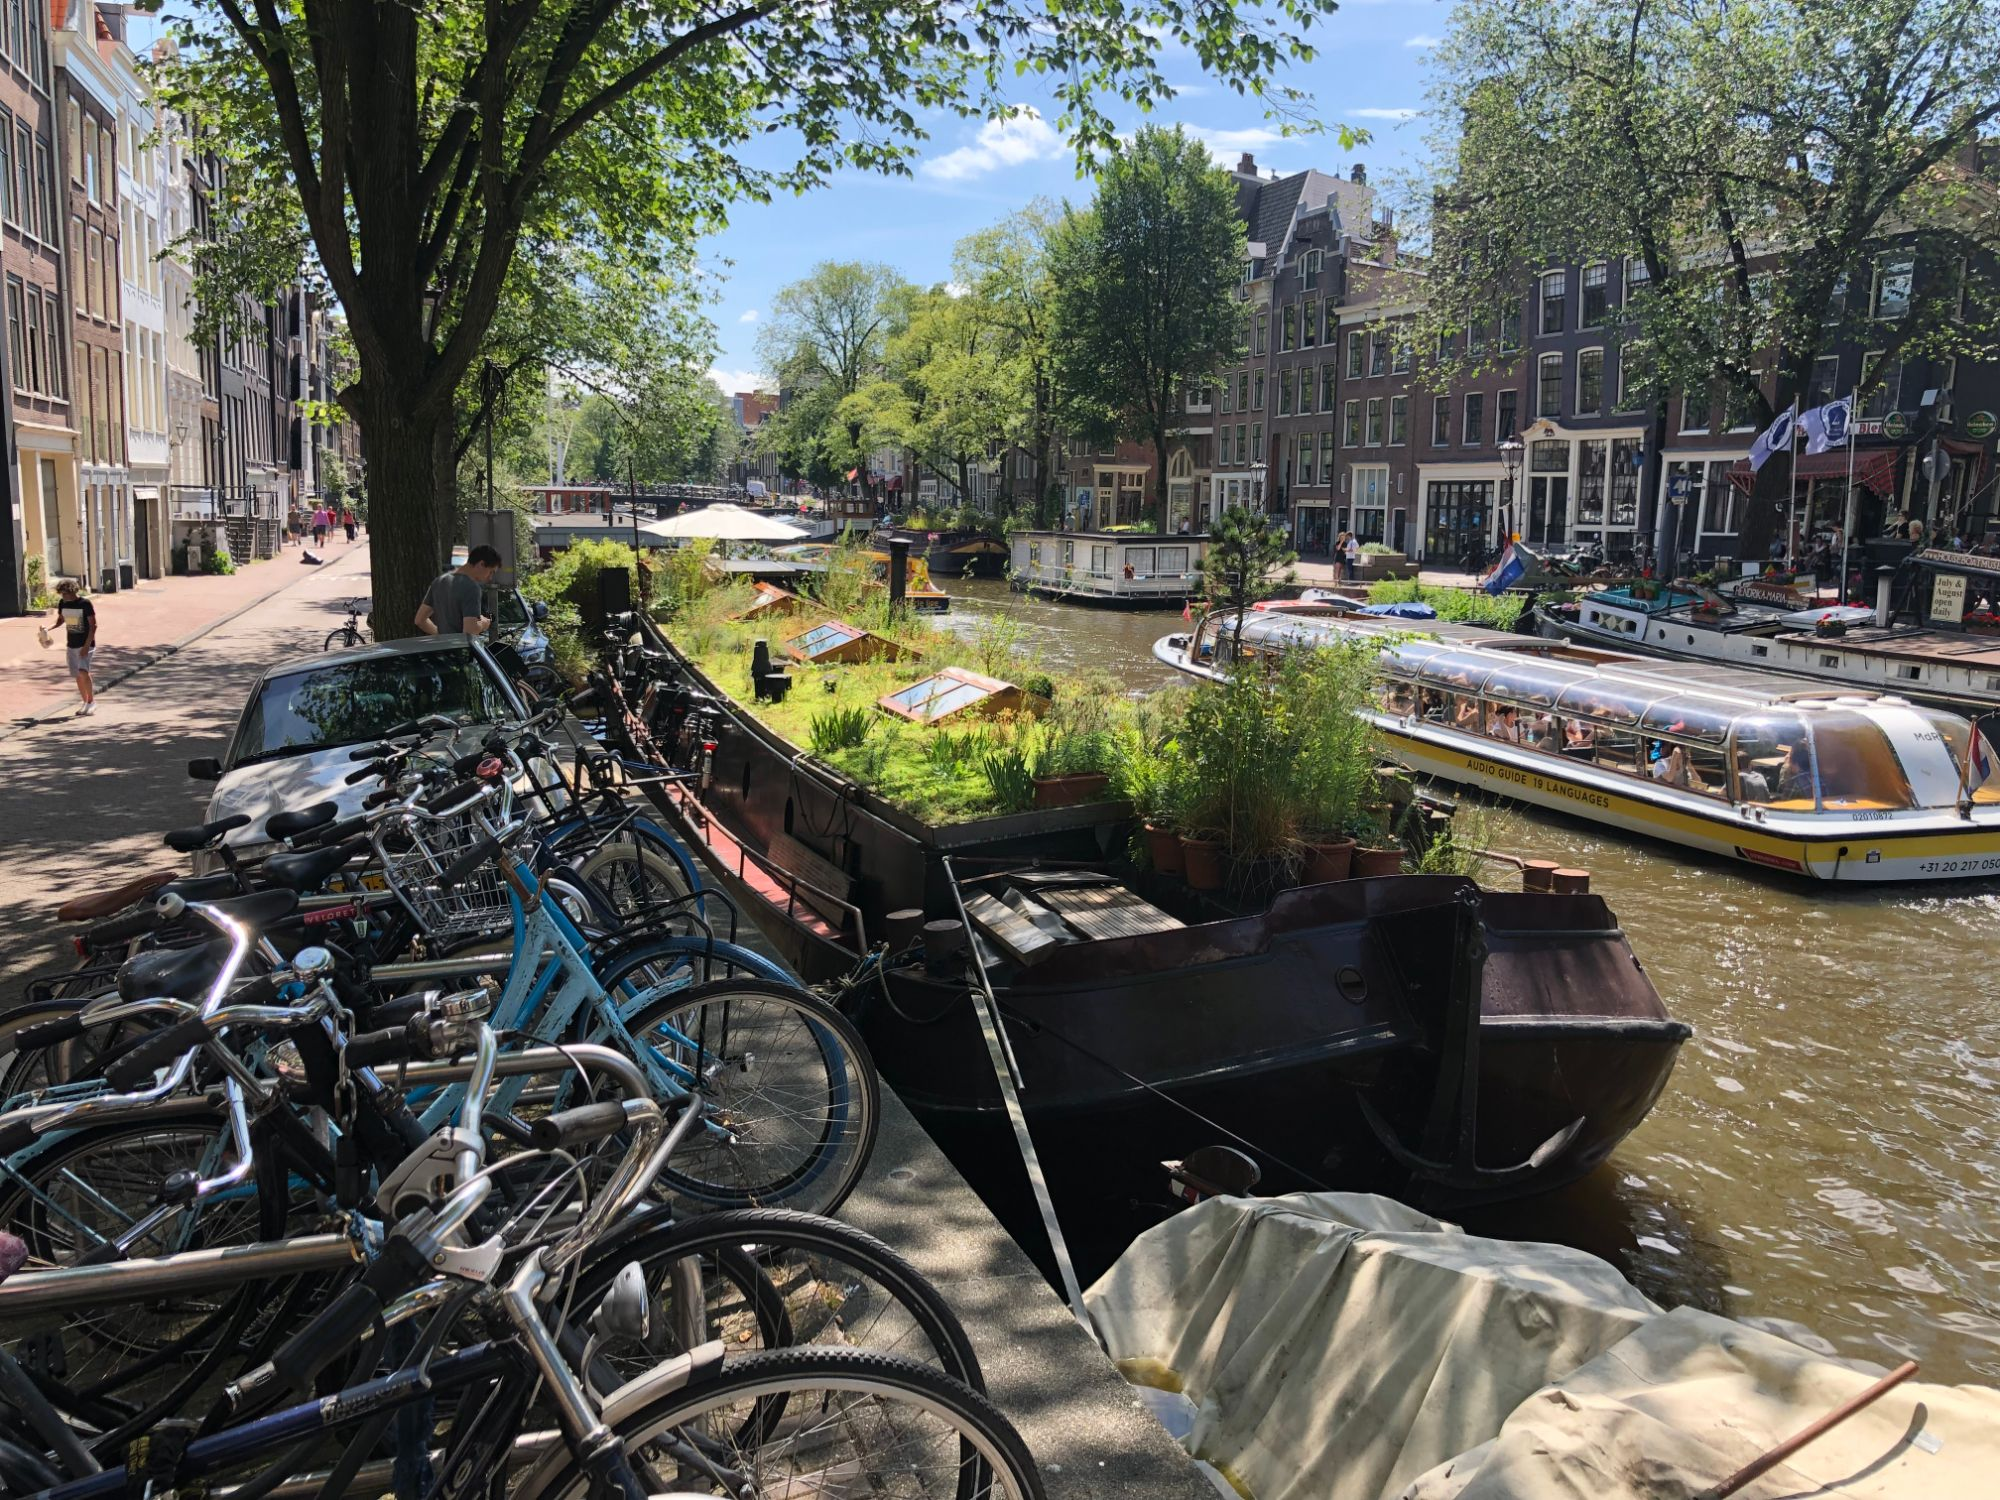 Free stock photo Amsterdam canal boat bikes buildings